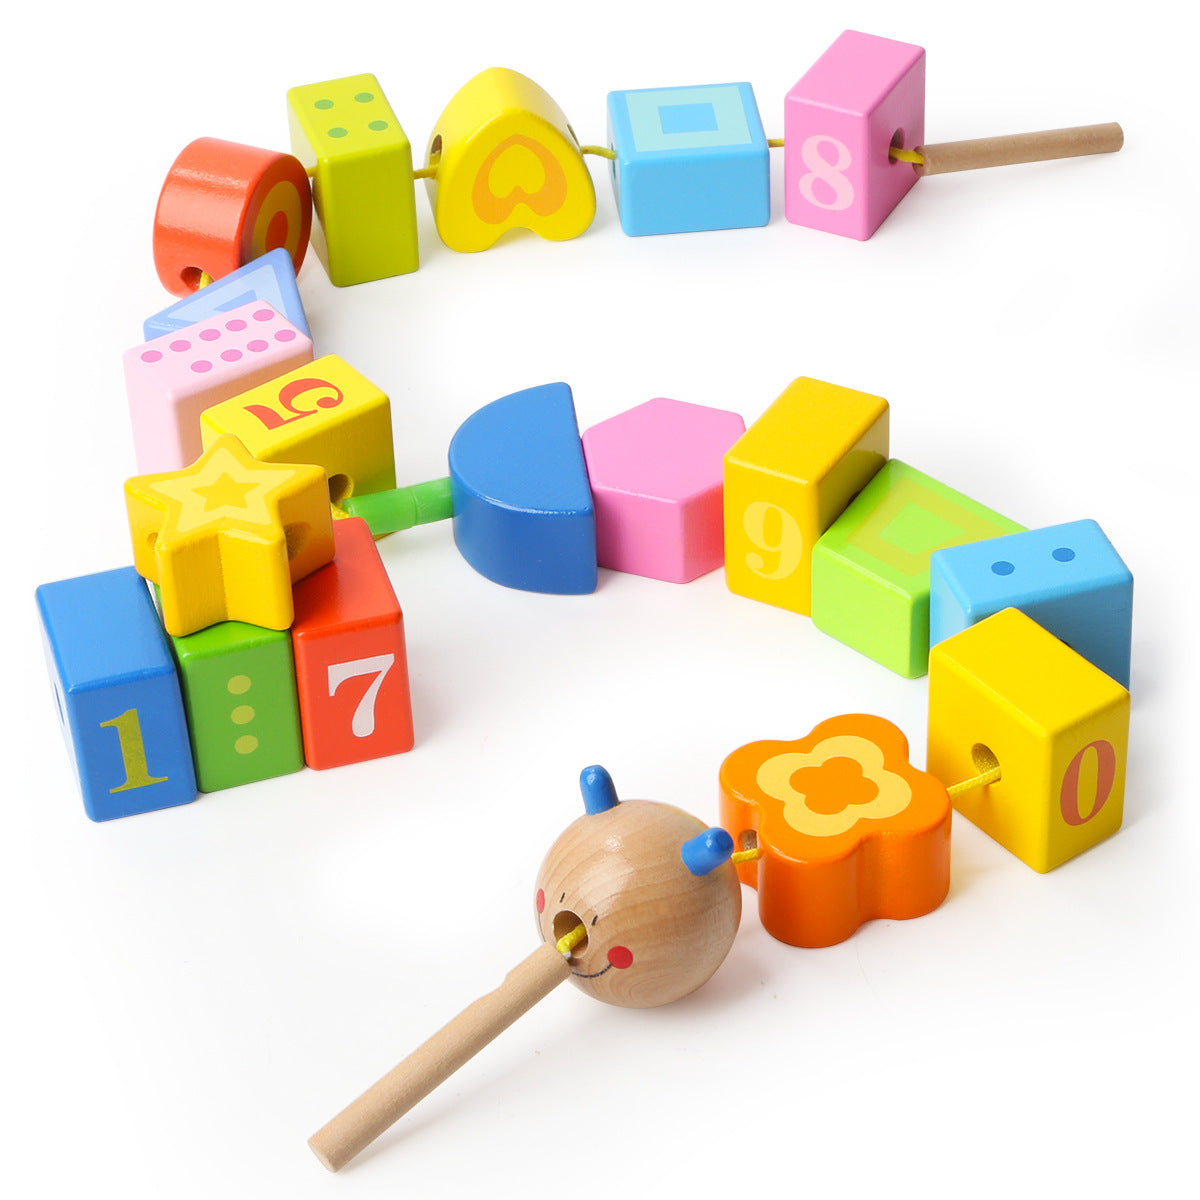 Caterpillar Mathematical Educational Toy - Lynne & Trends